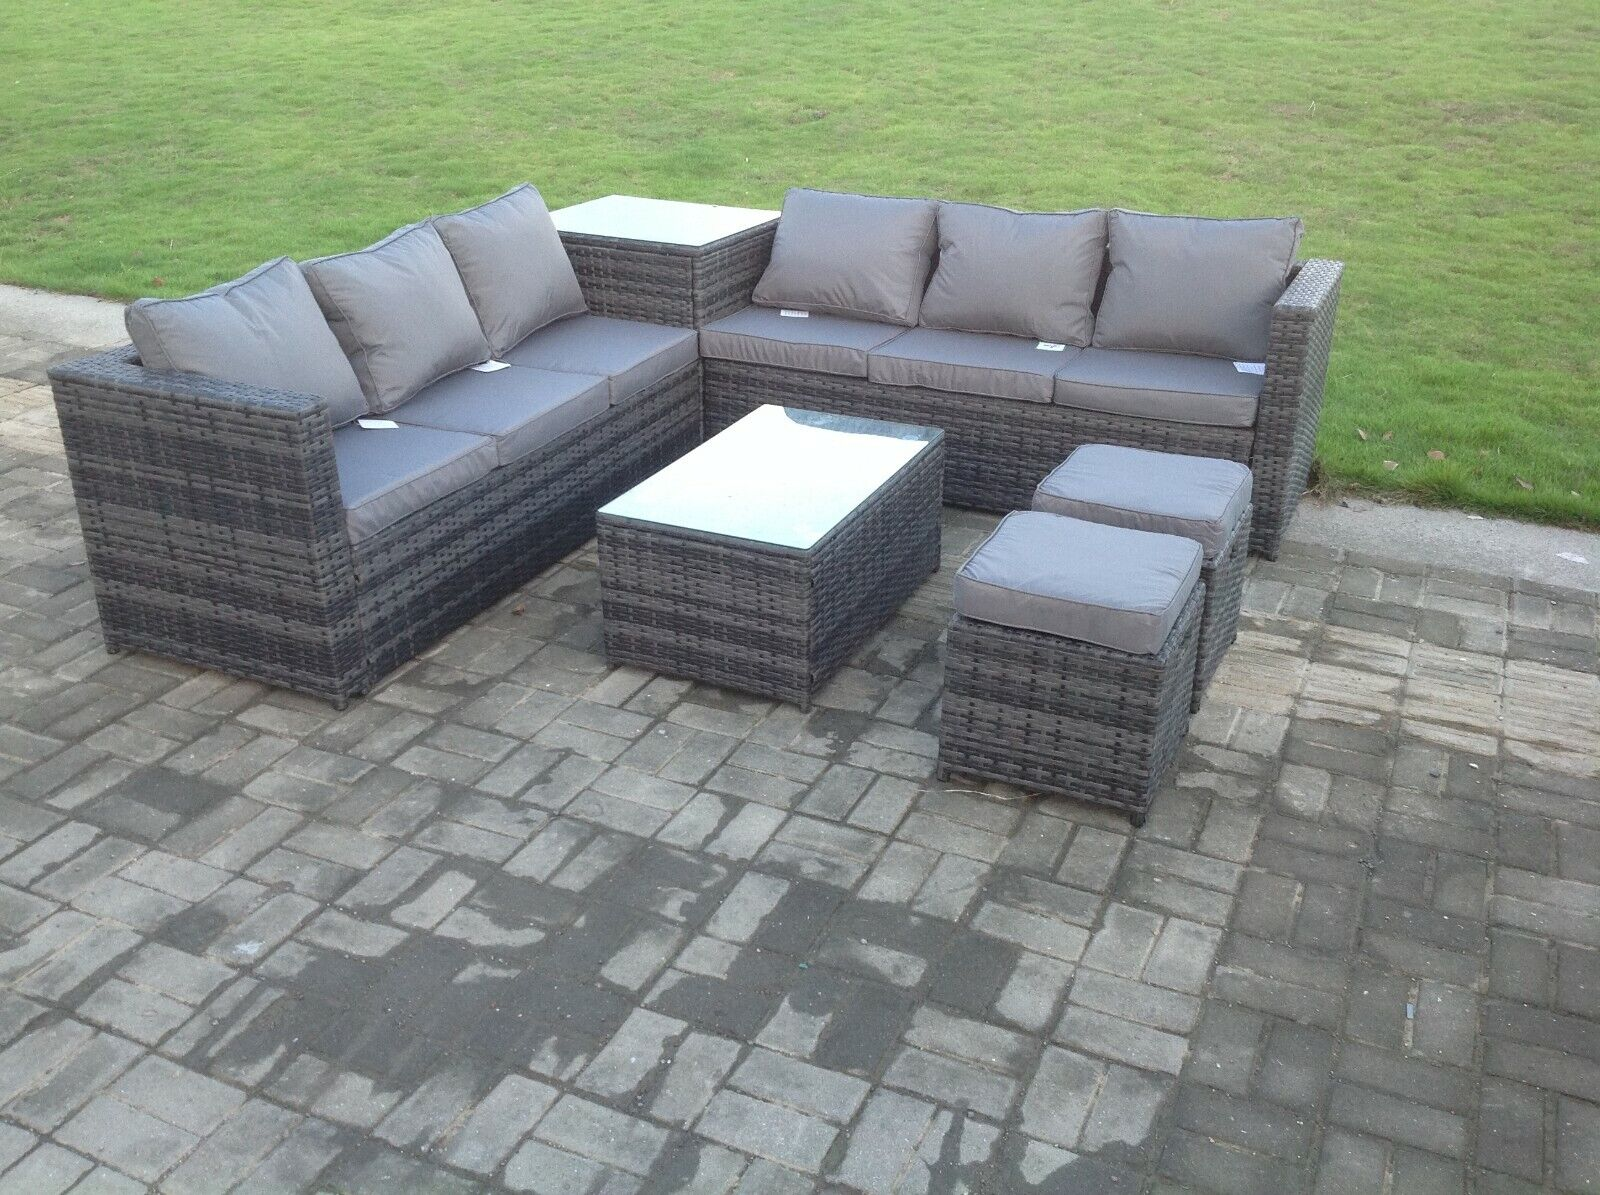 Garden Furniture - 8 seater grey rattan sofa with 2 table set conservatory outdoor garden furniture